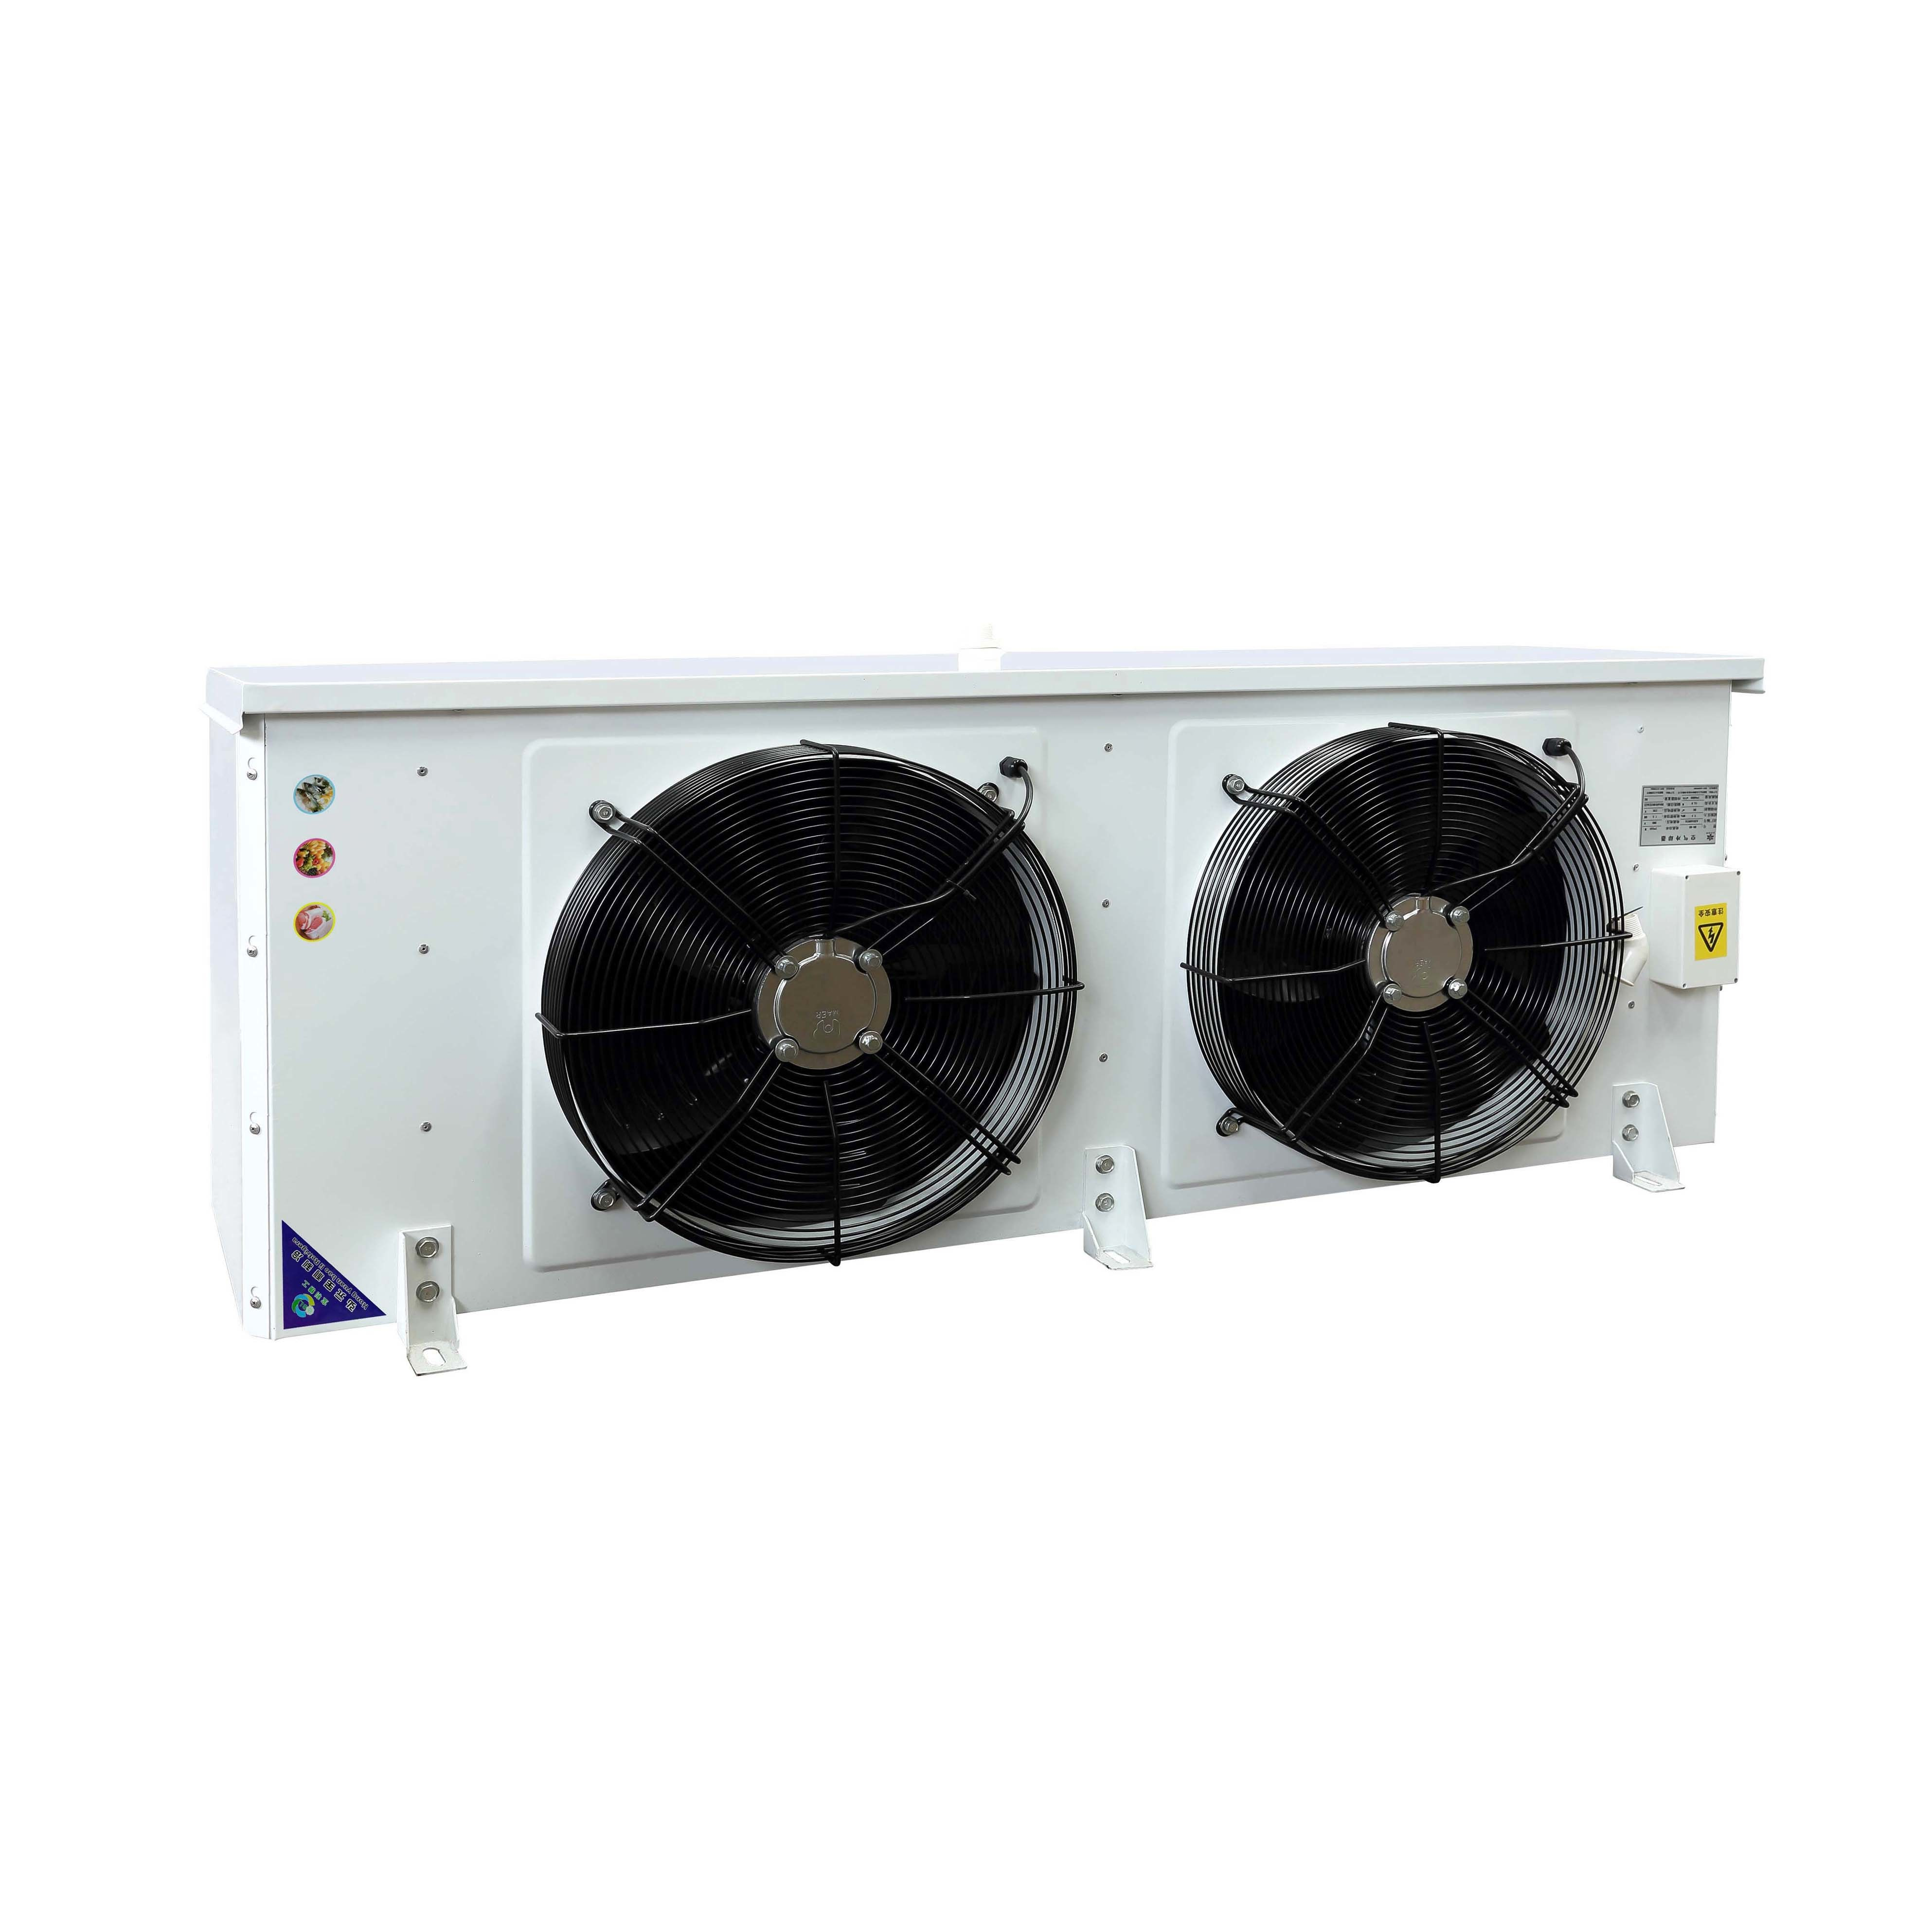 Low Temperature Dd Series Electric Defrosting Evaporator for Cold Room